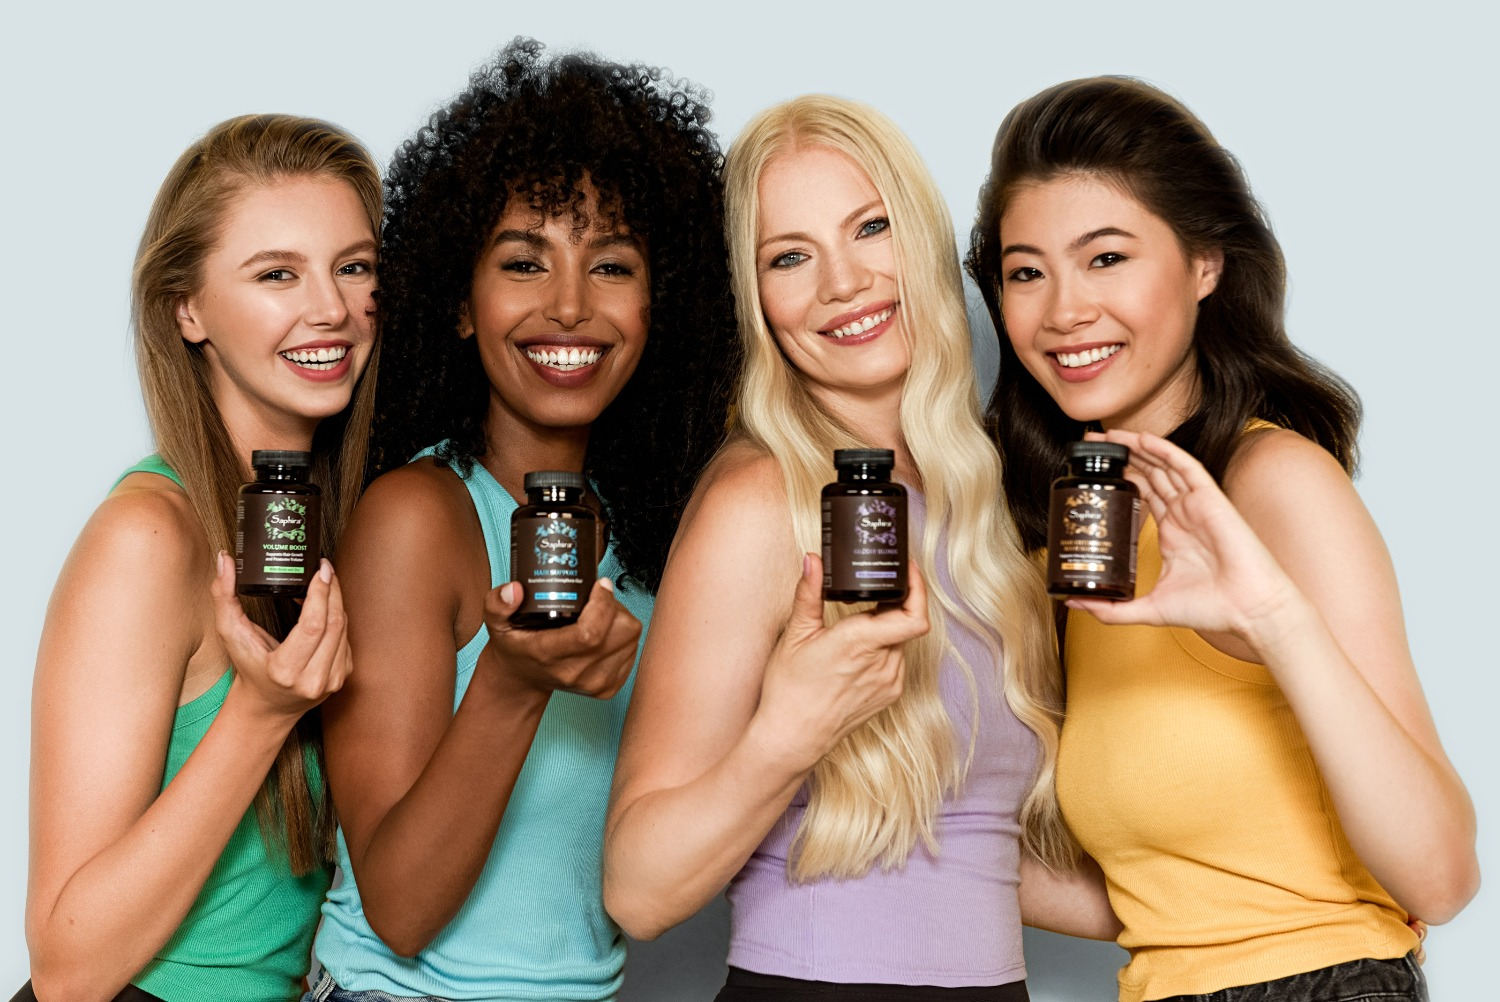 Saphira's Hair Supplements & Vitamins for Women and All Types of Hair